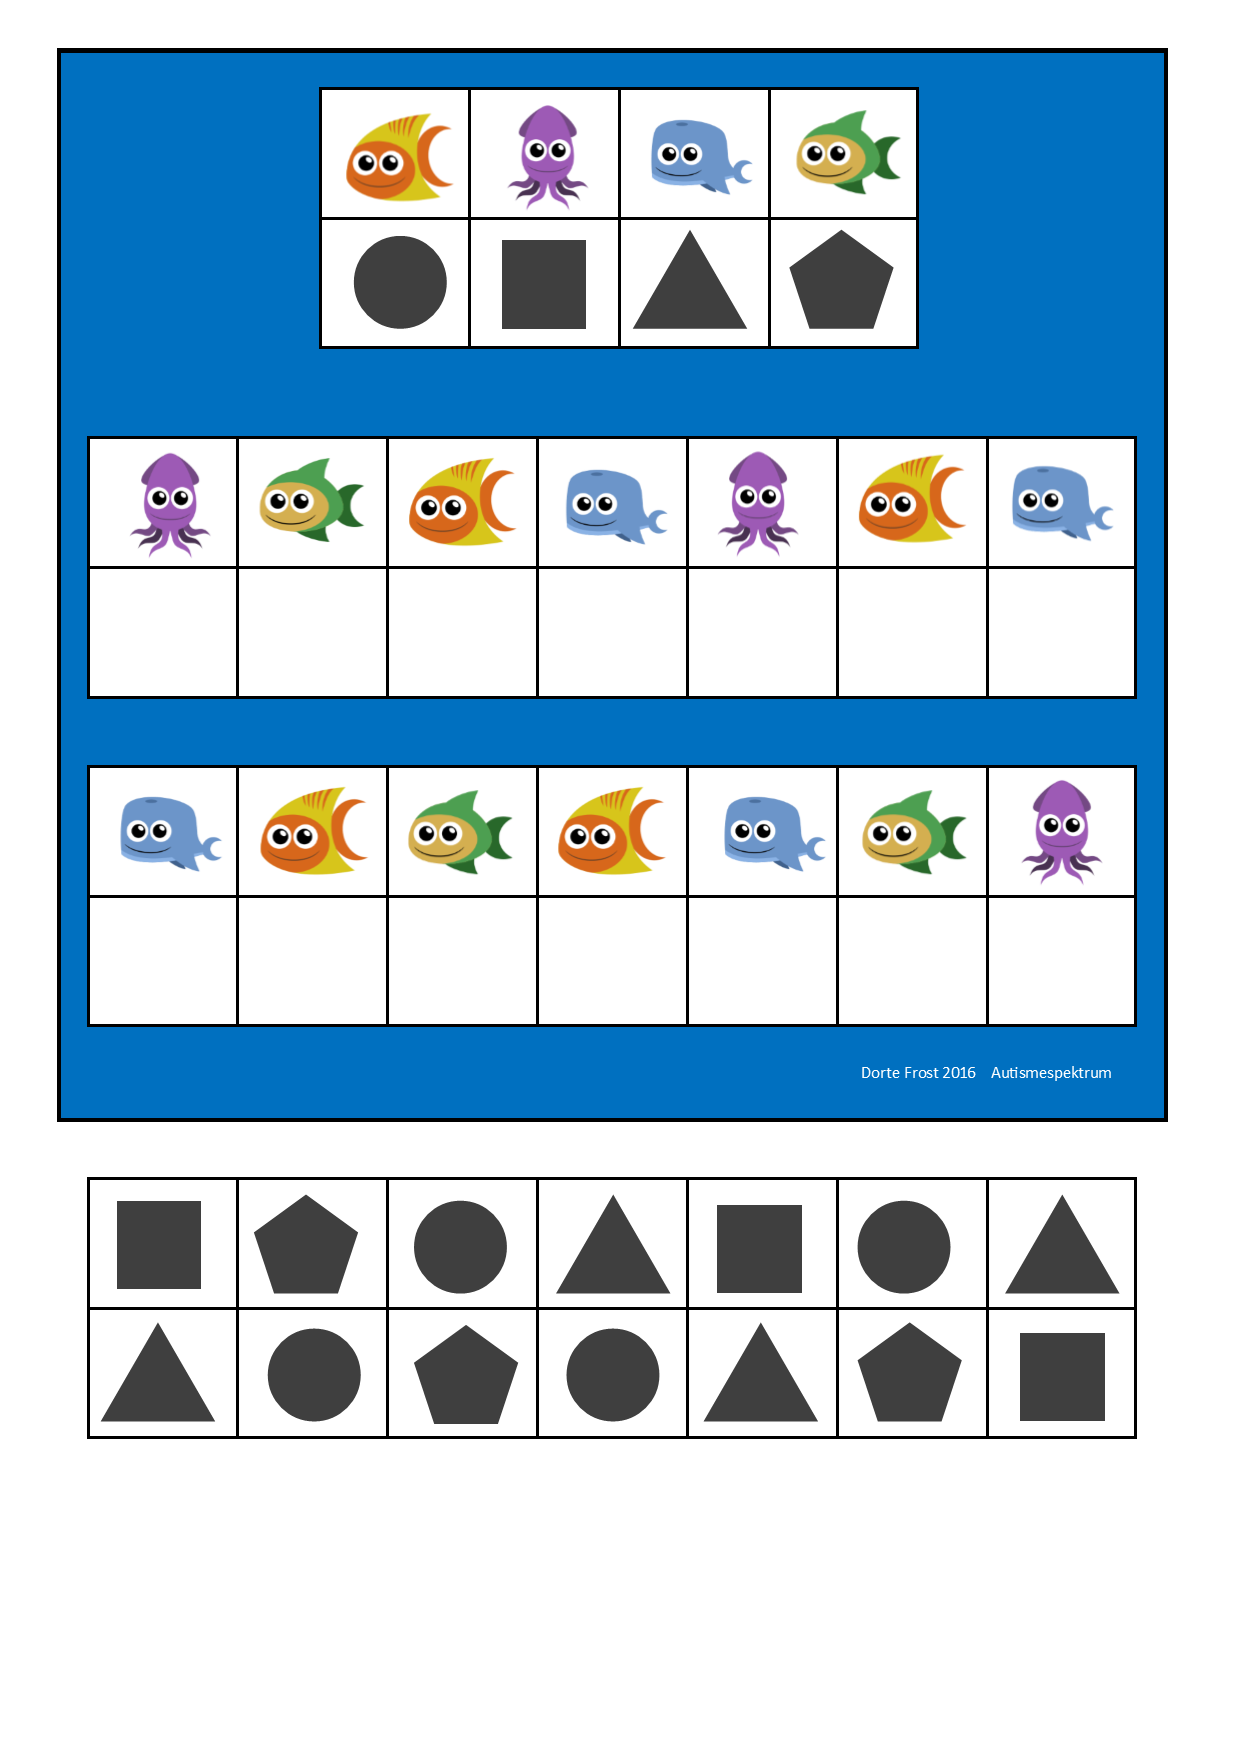 Board And Tiles For The Sea Animal Visual Perception Game